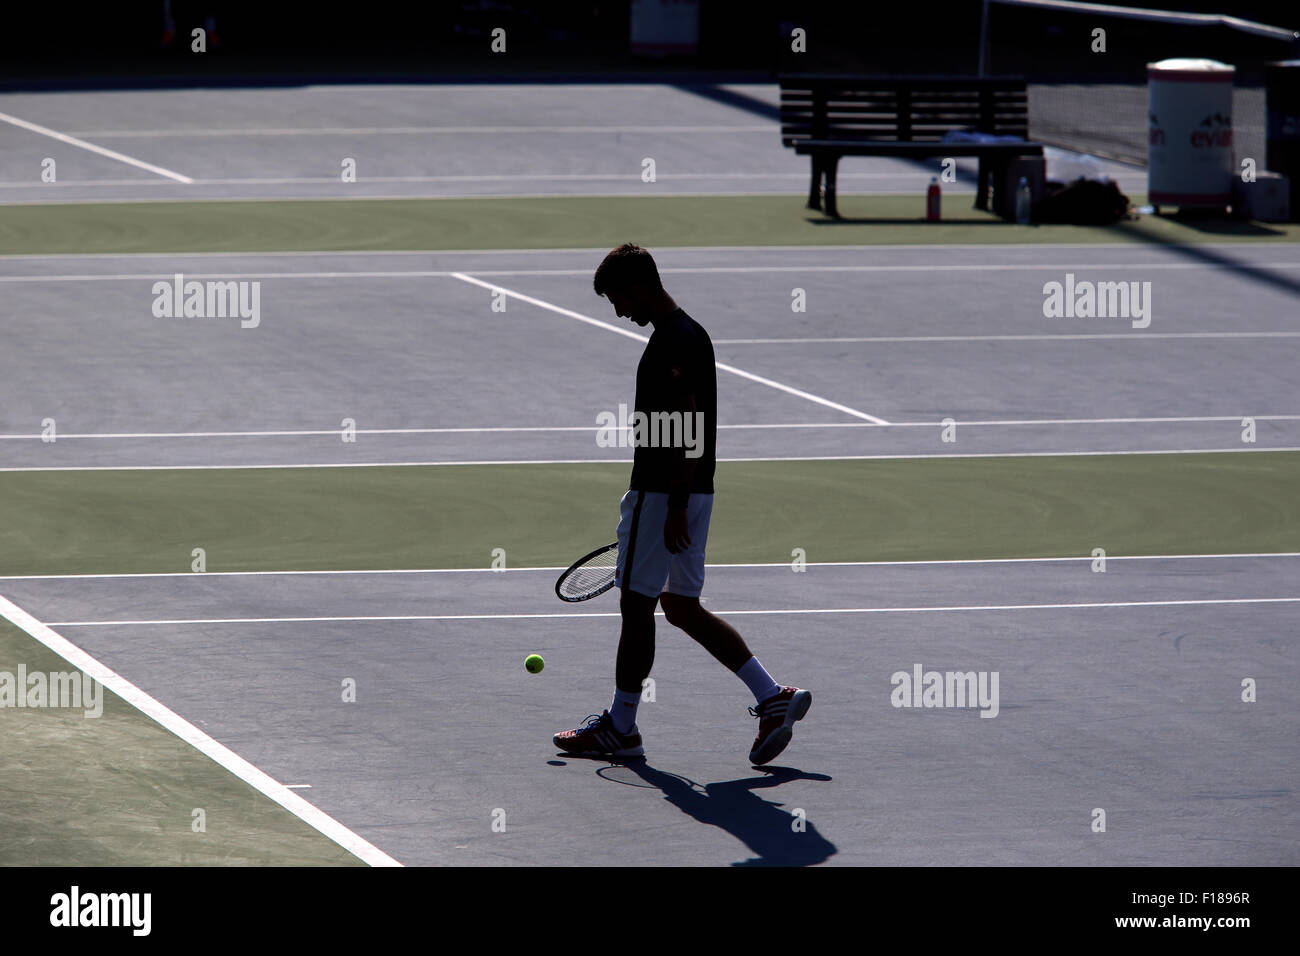 New York, USA. 29th Aug, 2015. Number One seed Novak Djokovic during a practice session at the Billie Jean King - Stock Image